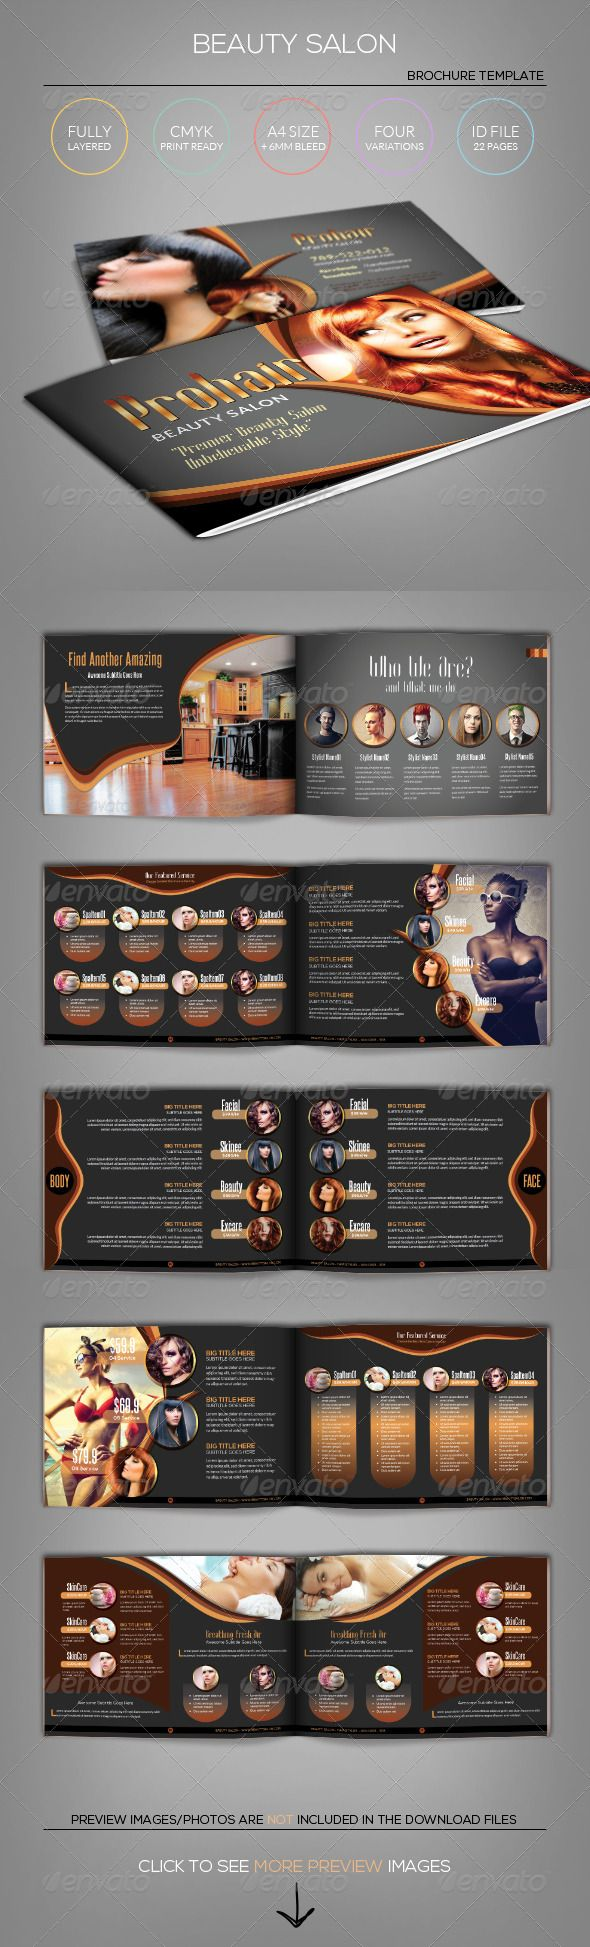 Modern Beauty Salon  Brochure Template  Brochure Template